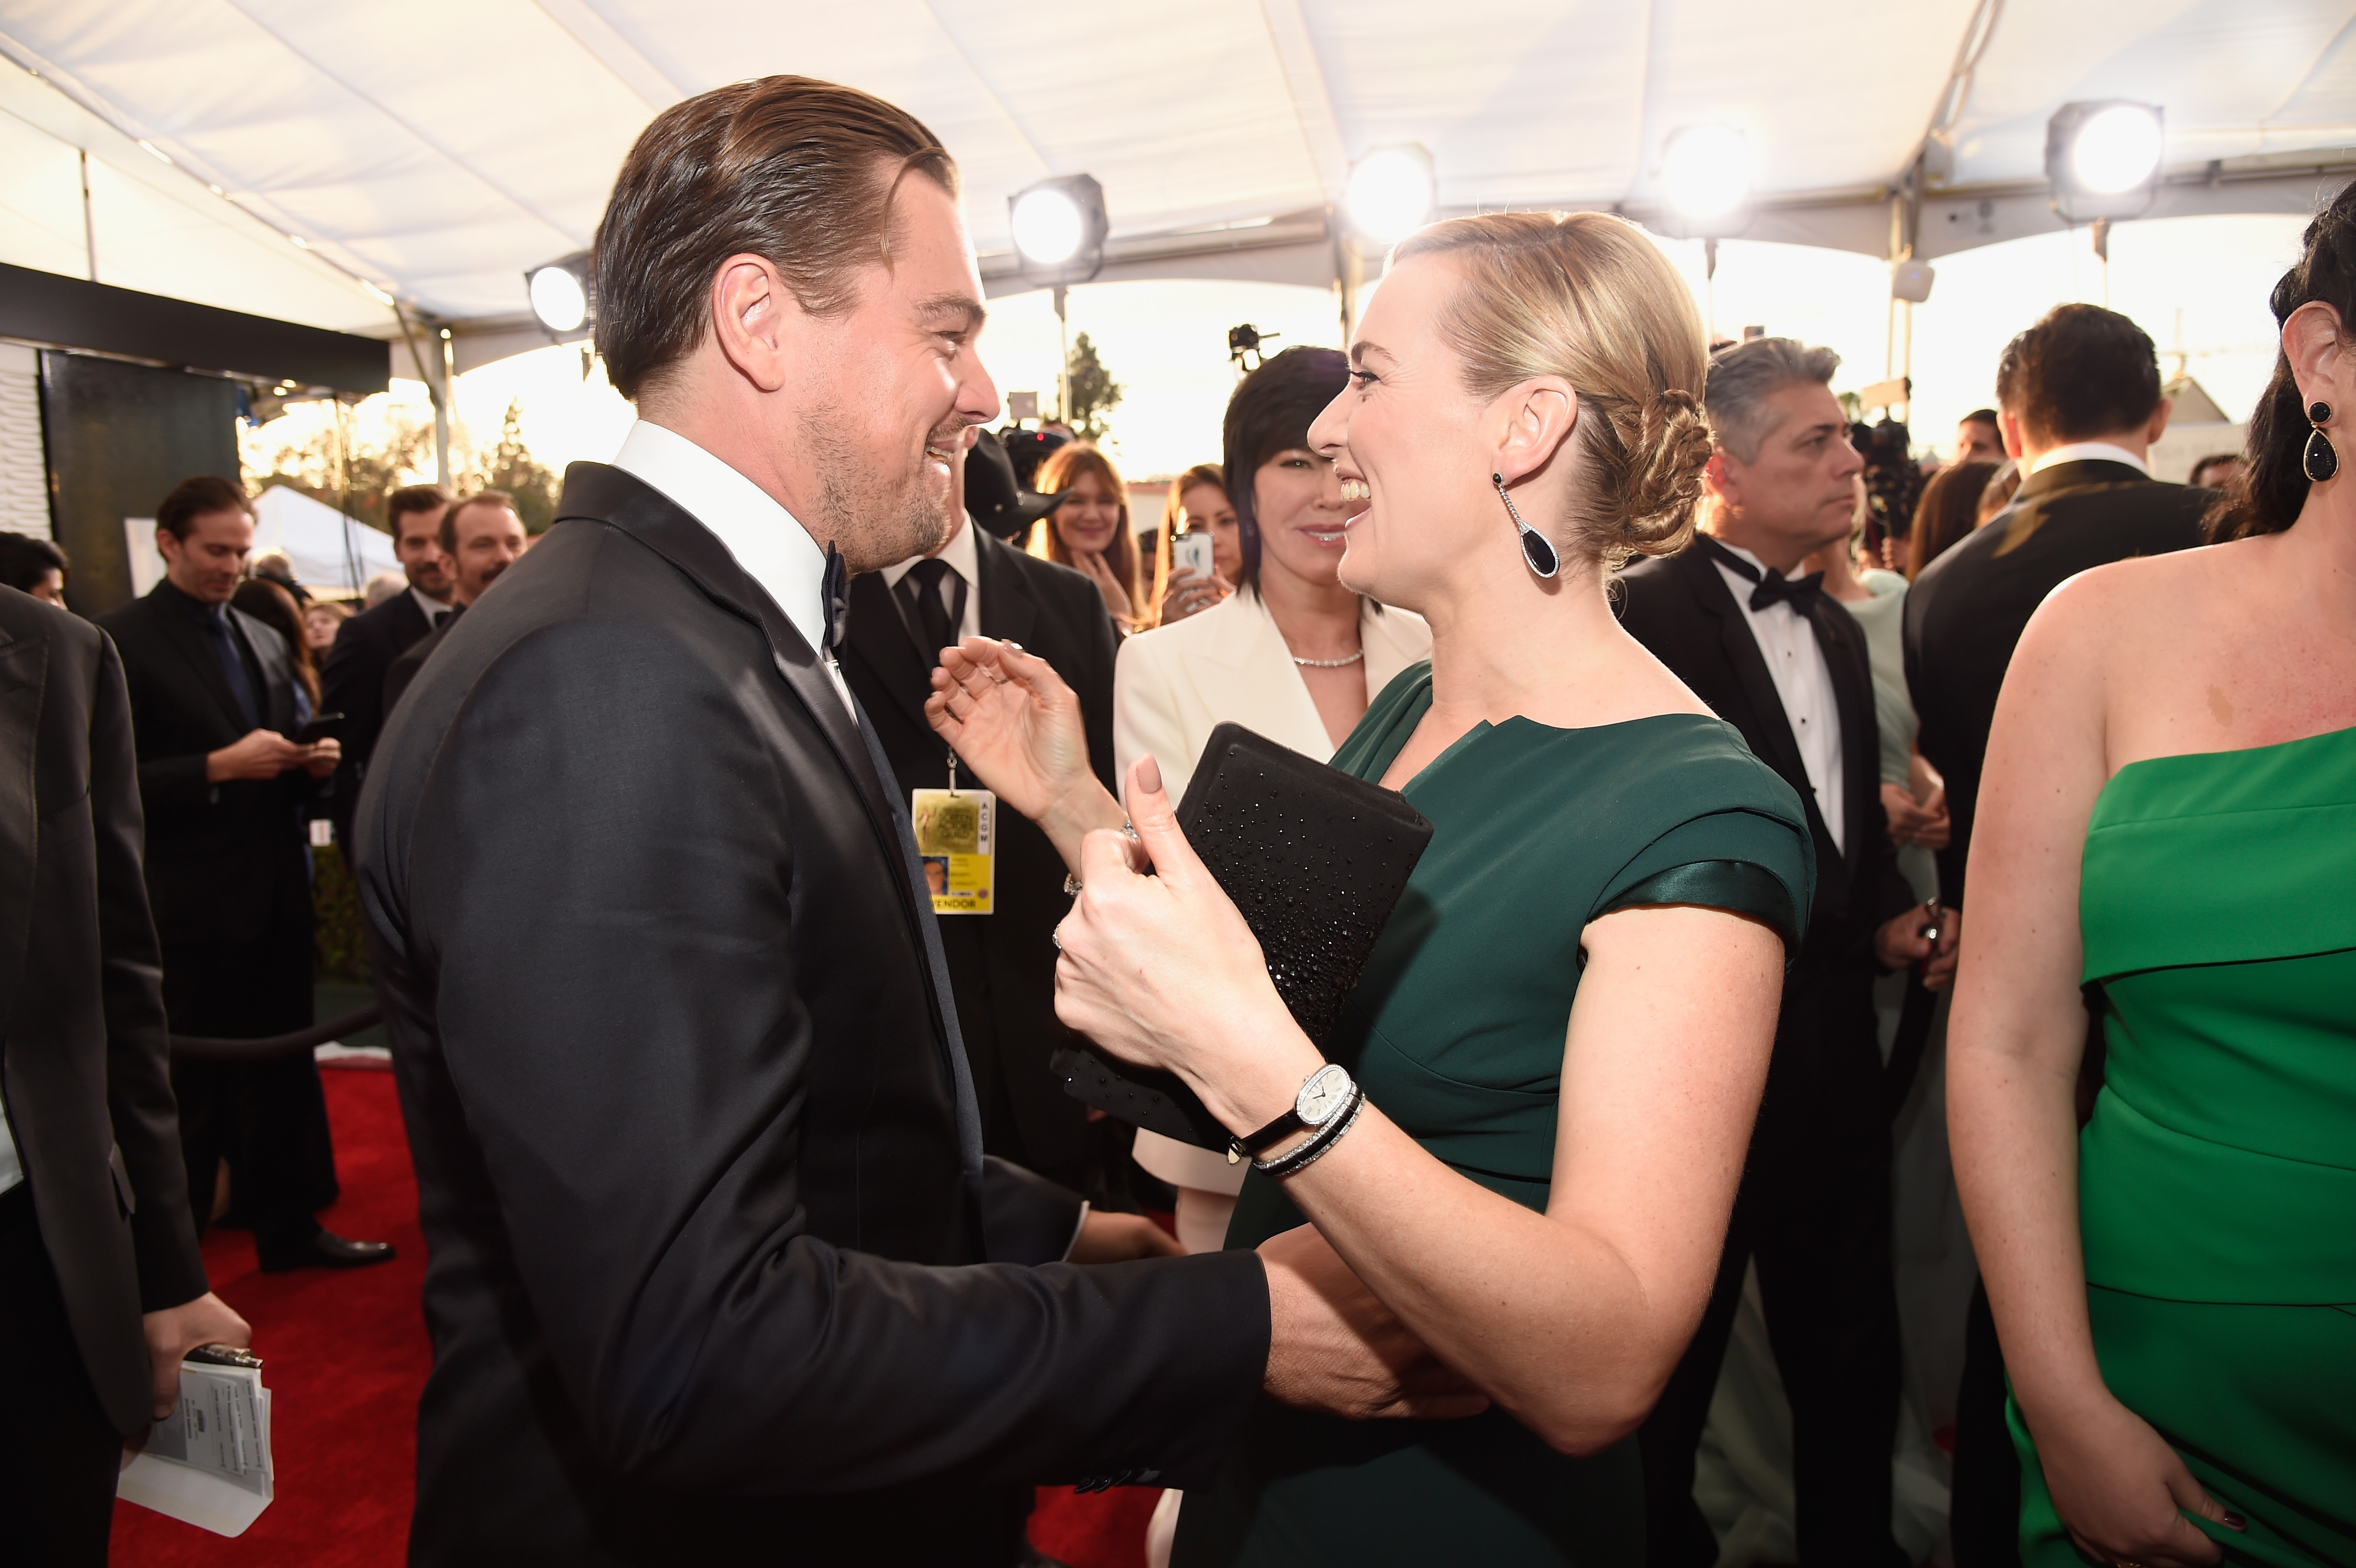 Leonardo DiCaprio and Kate Winslet attend The 22nd Annual Screen Actors Guild Awards on Jan. 30, 2016 in Los Angeles.